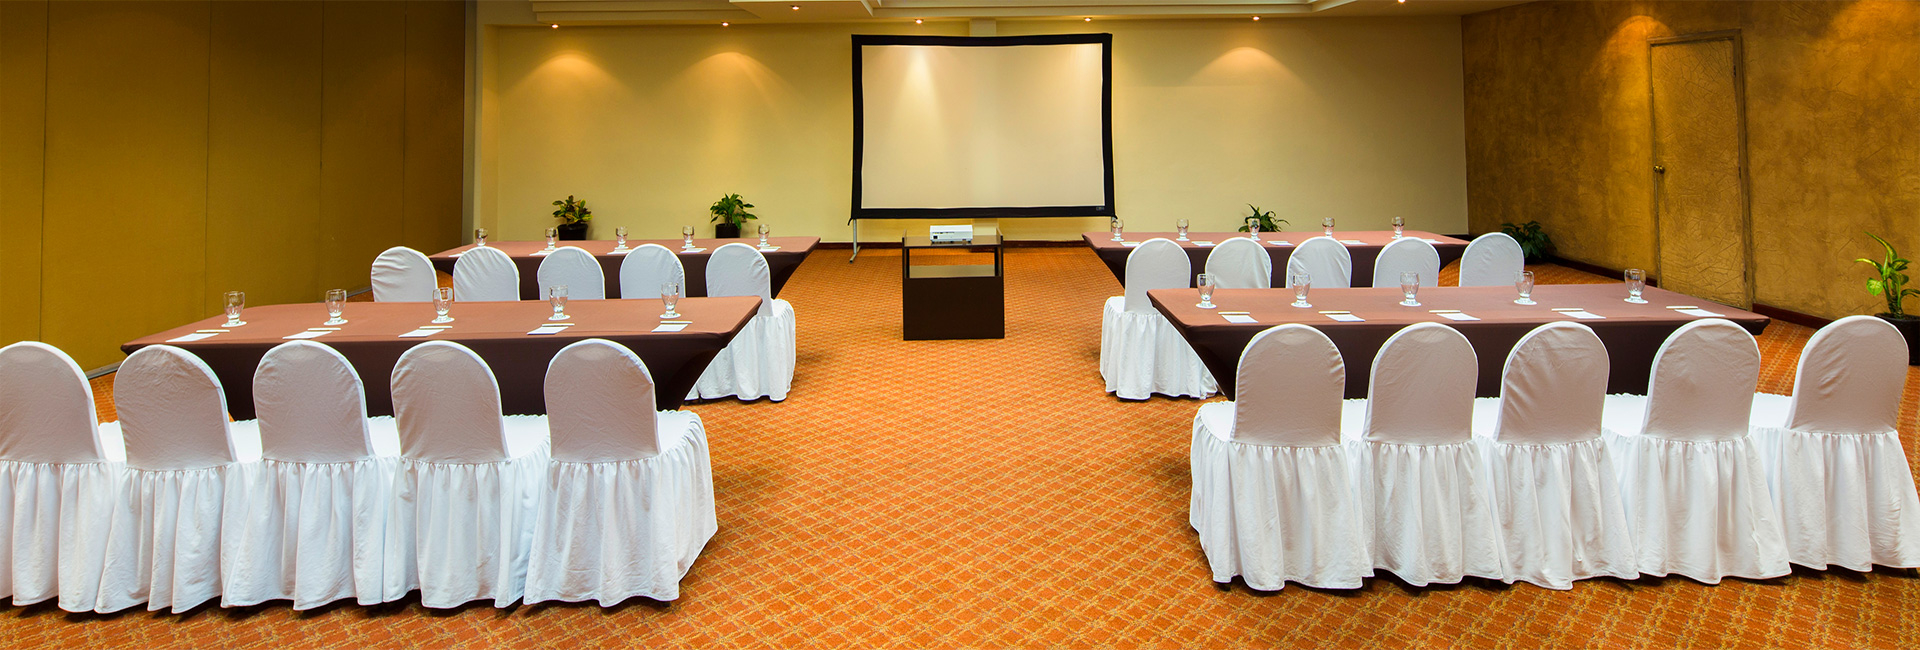 Meetings Facilities Cabo San Lucas Cochimie